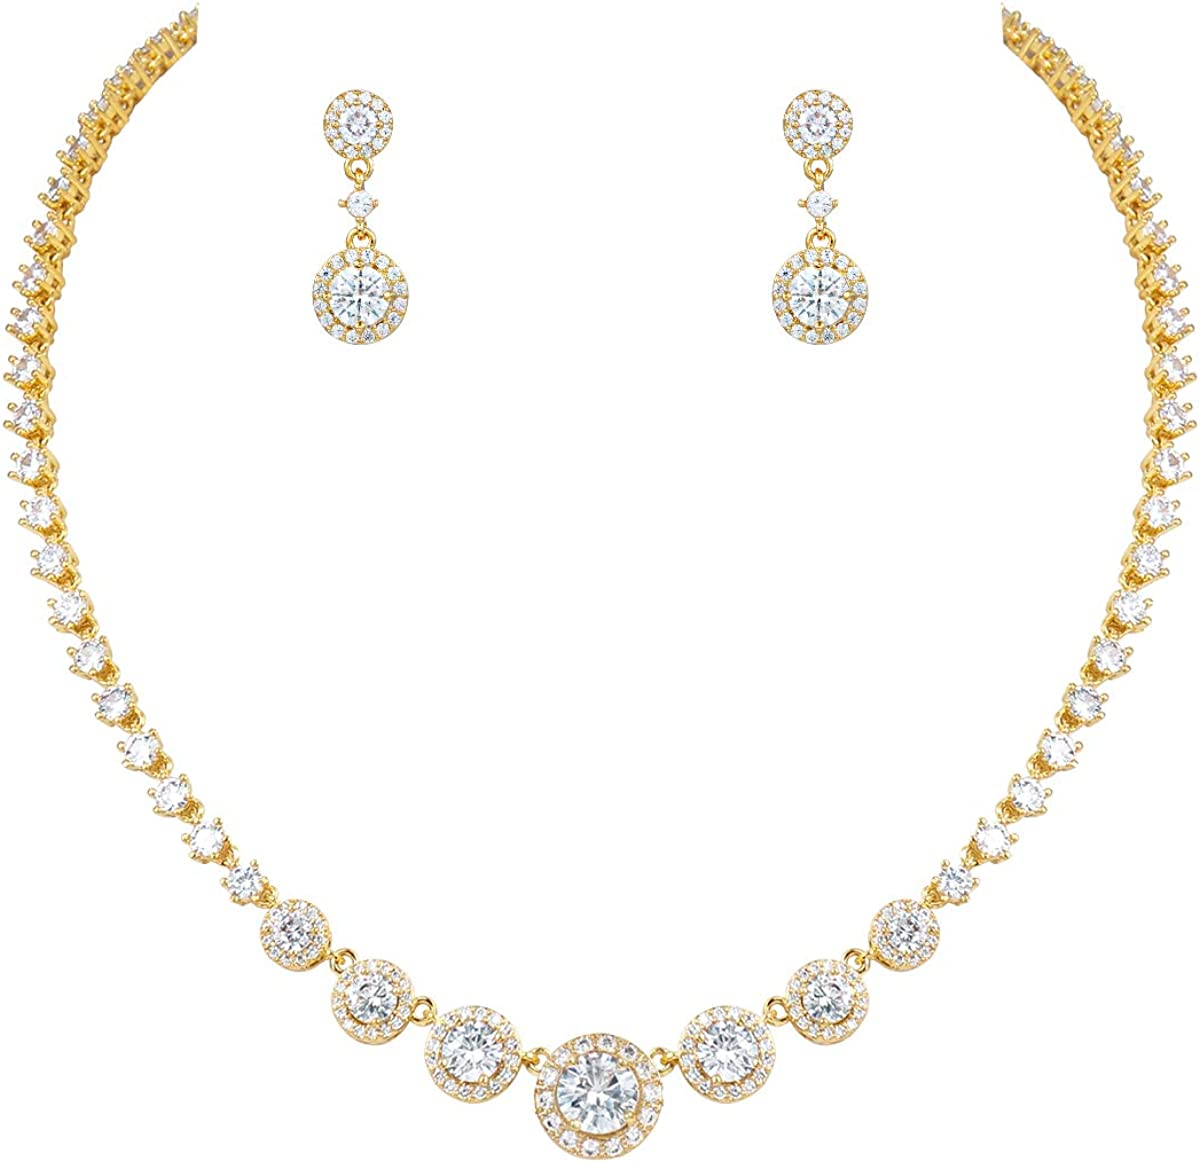 MEEDOZ White Gold/Gold/Rose Gold Plated Women's Classic Round Cubic Zirconia Tennis Pendnat Necklace and Dangle Earrings Jewelry Sets for Bridal Wedding